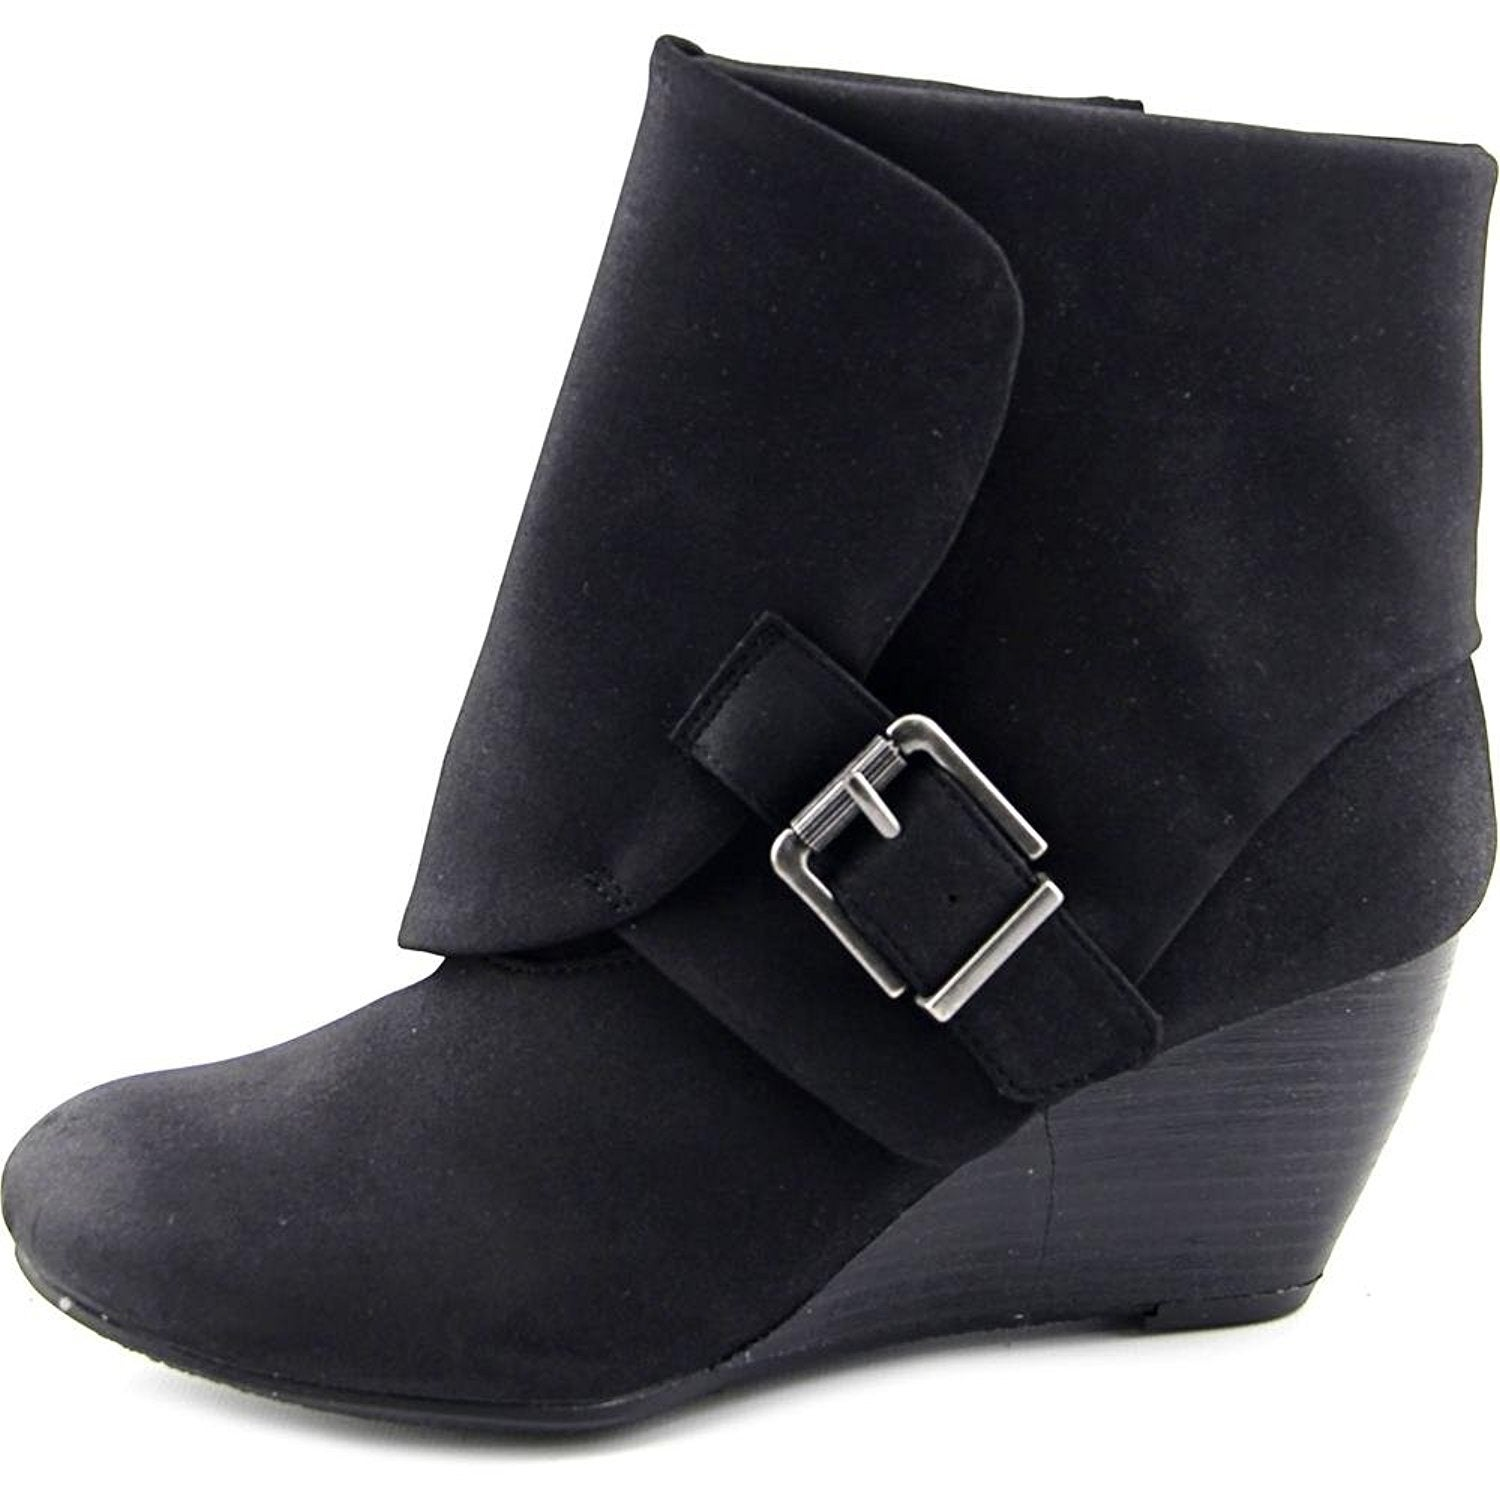 c4920bd469c Shop AR35 Coreene Cuffed Wedge Ankle Booties - Chocolate - On Sale - Free  Shipping On Orders Over  45 - Overstock.com - 16978815